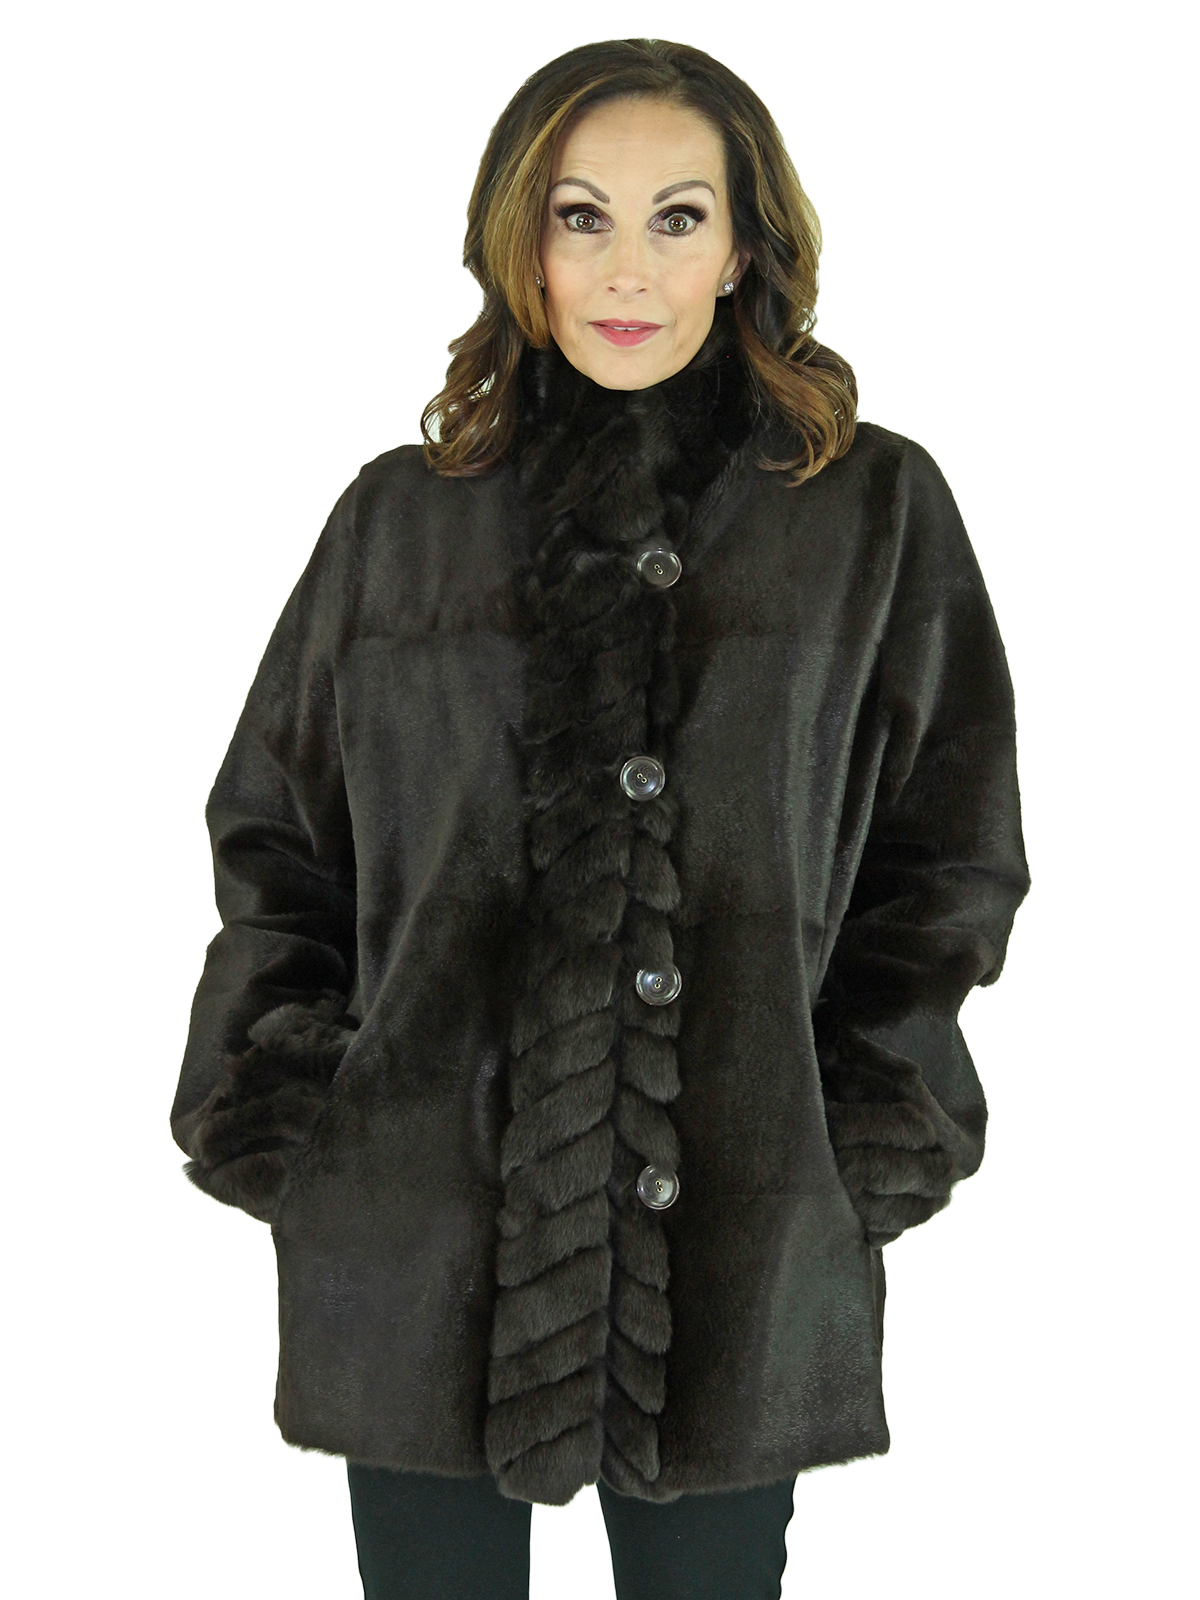 Woman's Brown Sheared Rabbit Fur Jacket Reversing to Leather